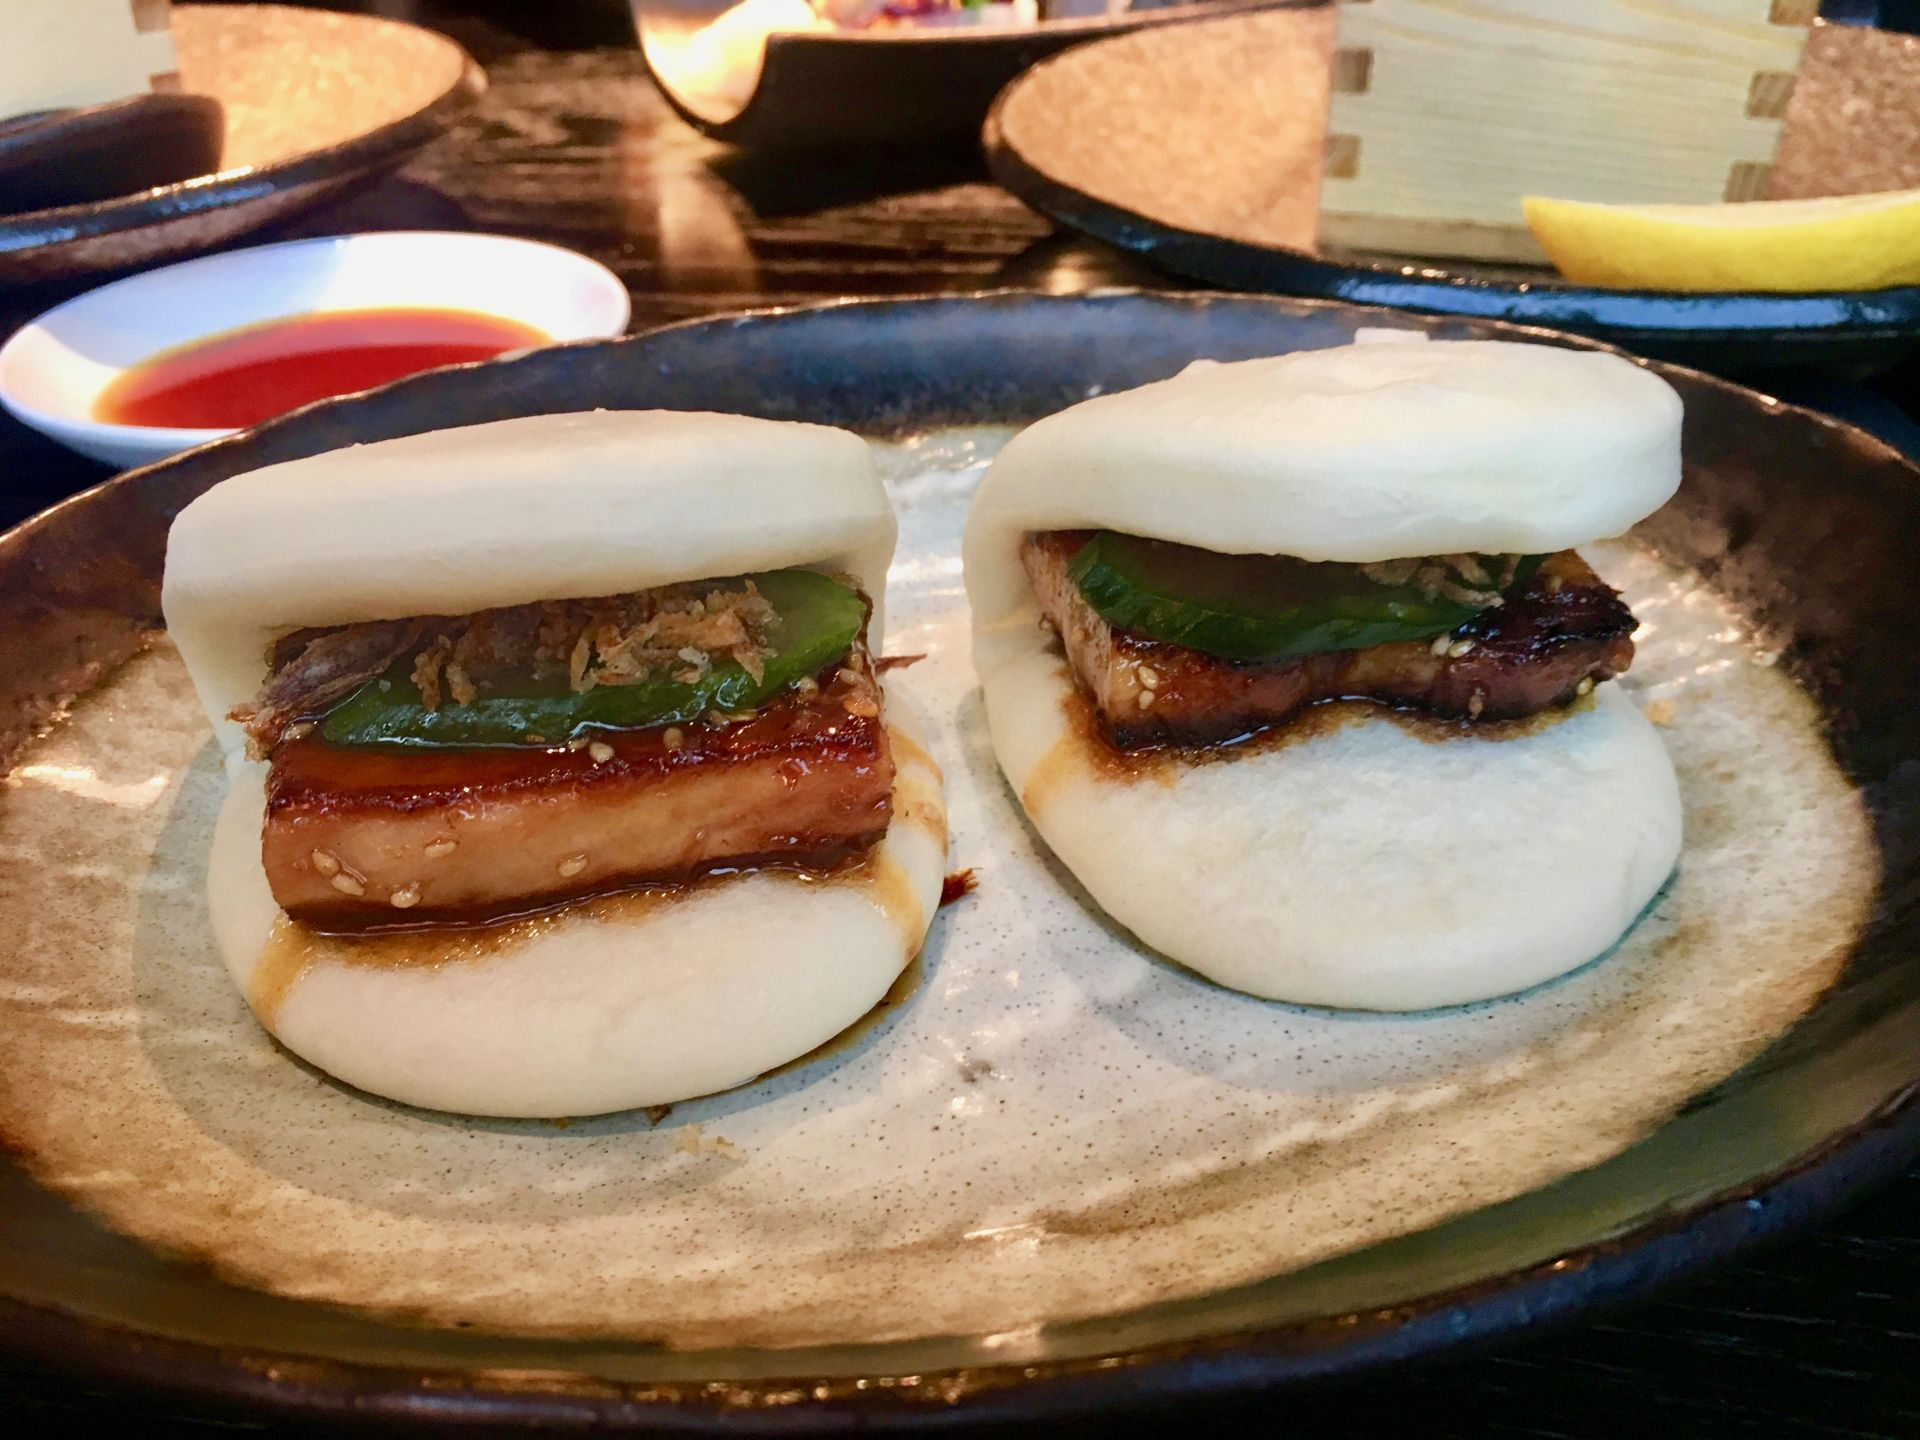 best sushi in Leeds: A pair of bao buns with pork belly inside, sat next to each other on a plain plate at issho sushi leeds